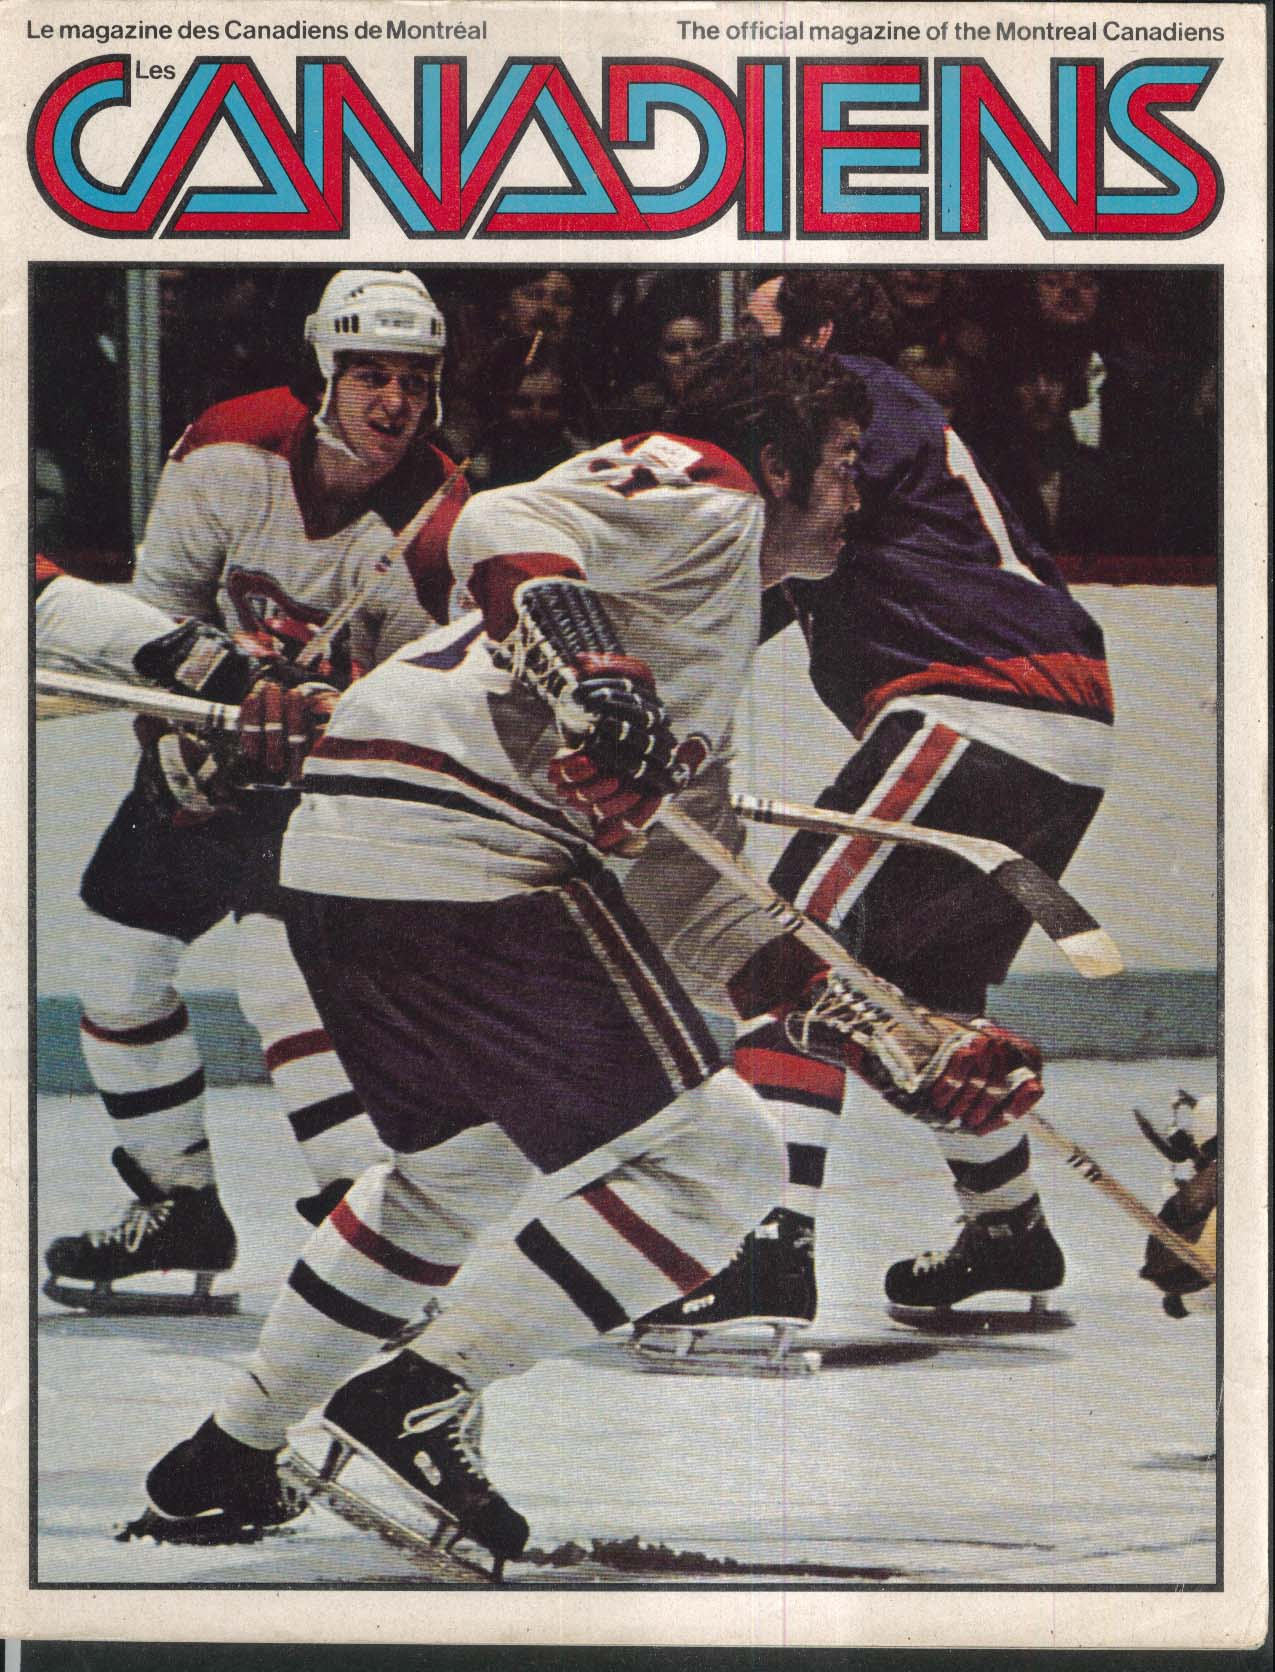 Montreal CANADIENS Official Magazine 1976-1977 Schedule/Roster